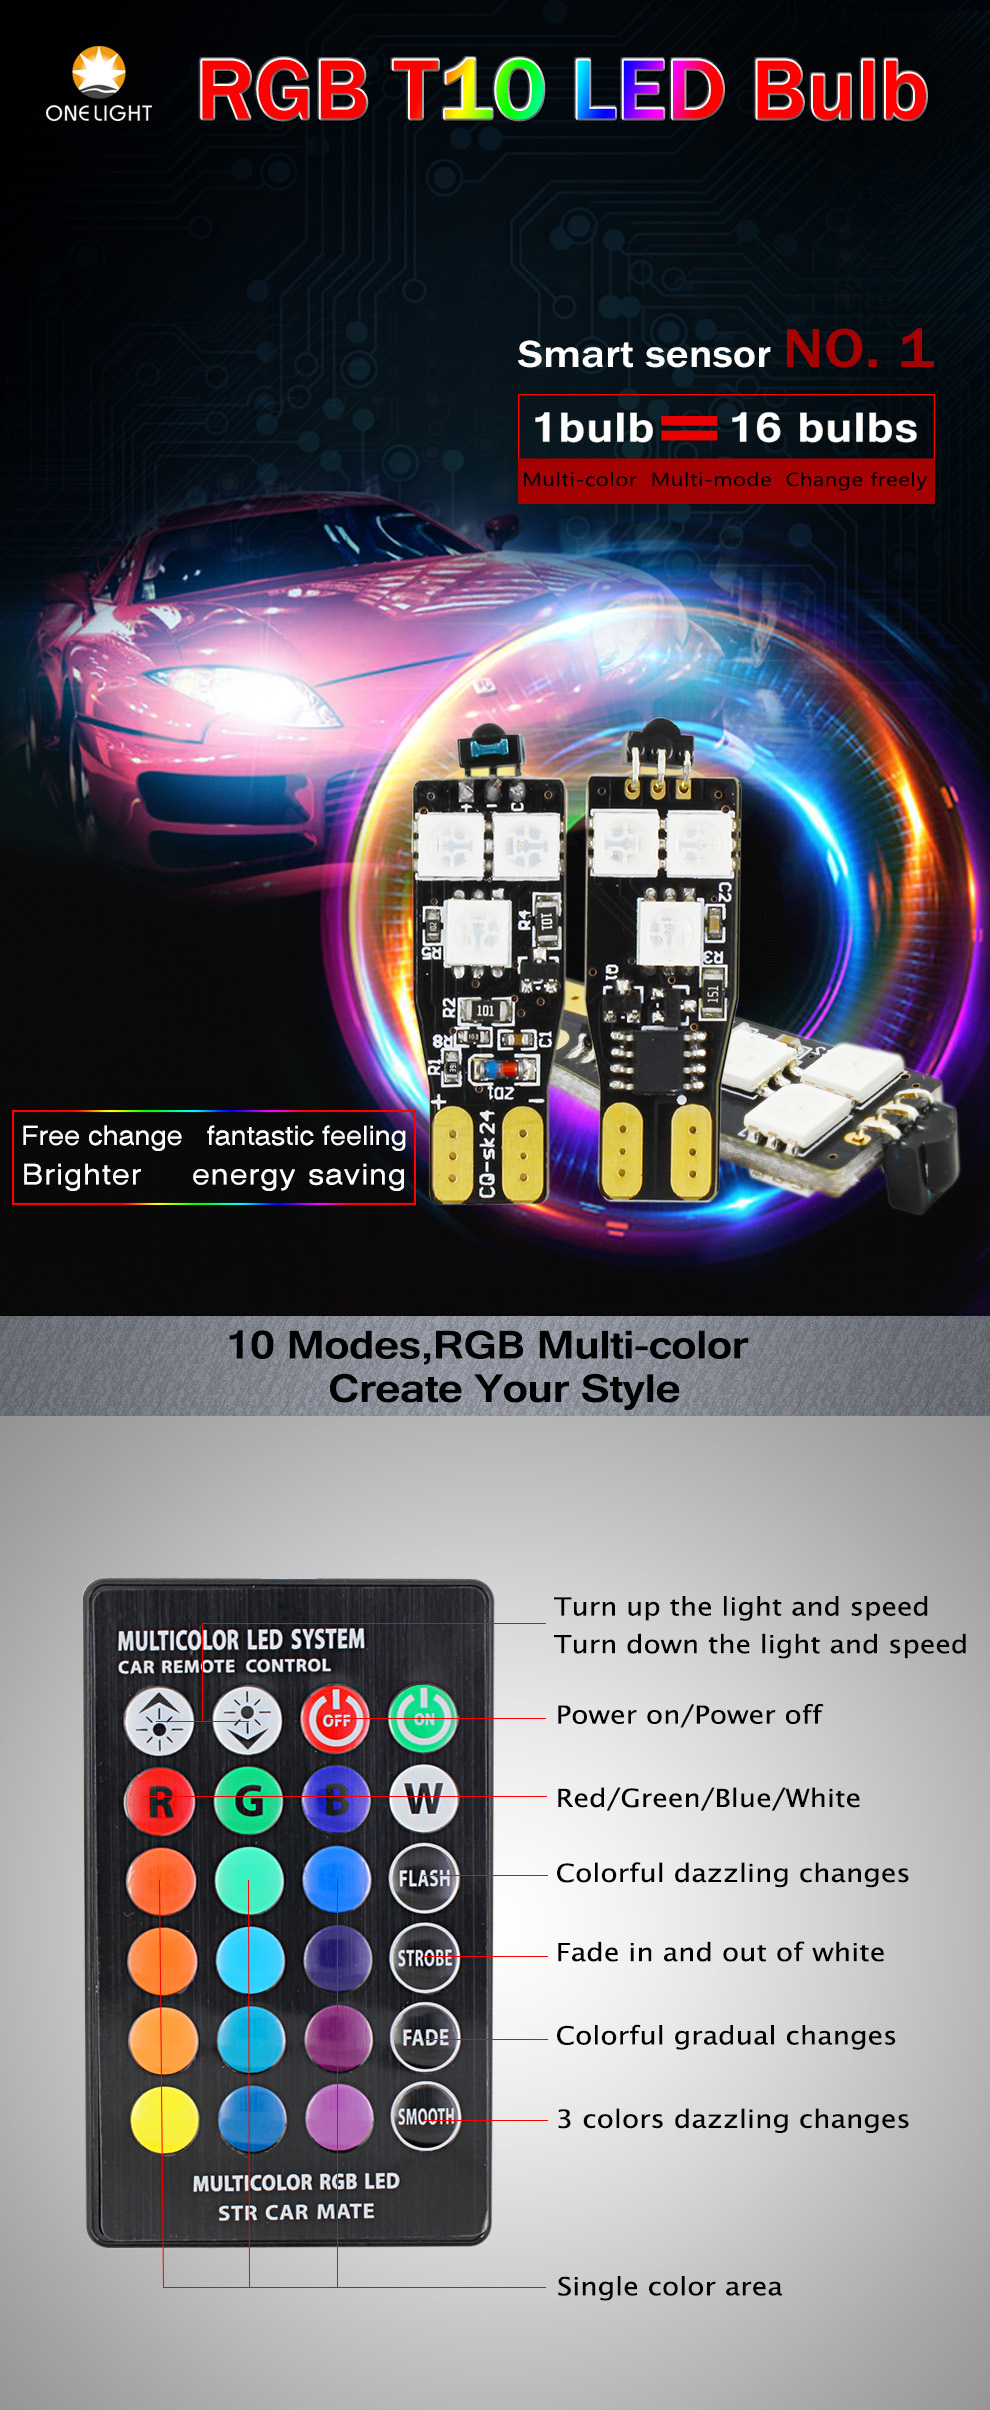 Auto Interieur Lamp Auto Styling Rgb Afstandsbediening Interieur Strobe Lichten Auto Led Lamp Rgb T10 194 W5w Kleur Veranderende T10 Led Lamp Buy Auto Styling Rgb